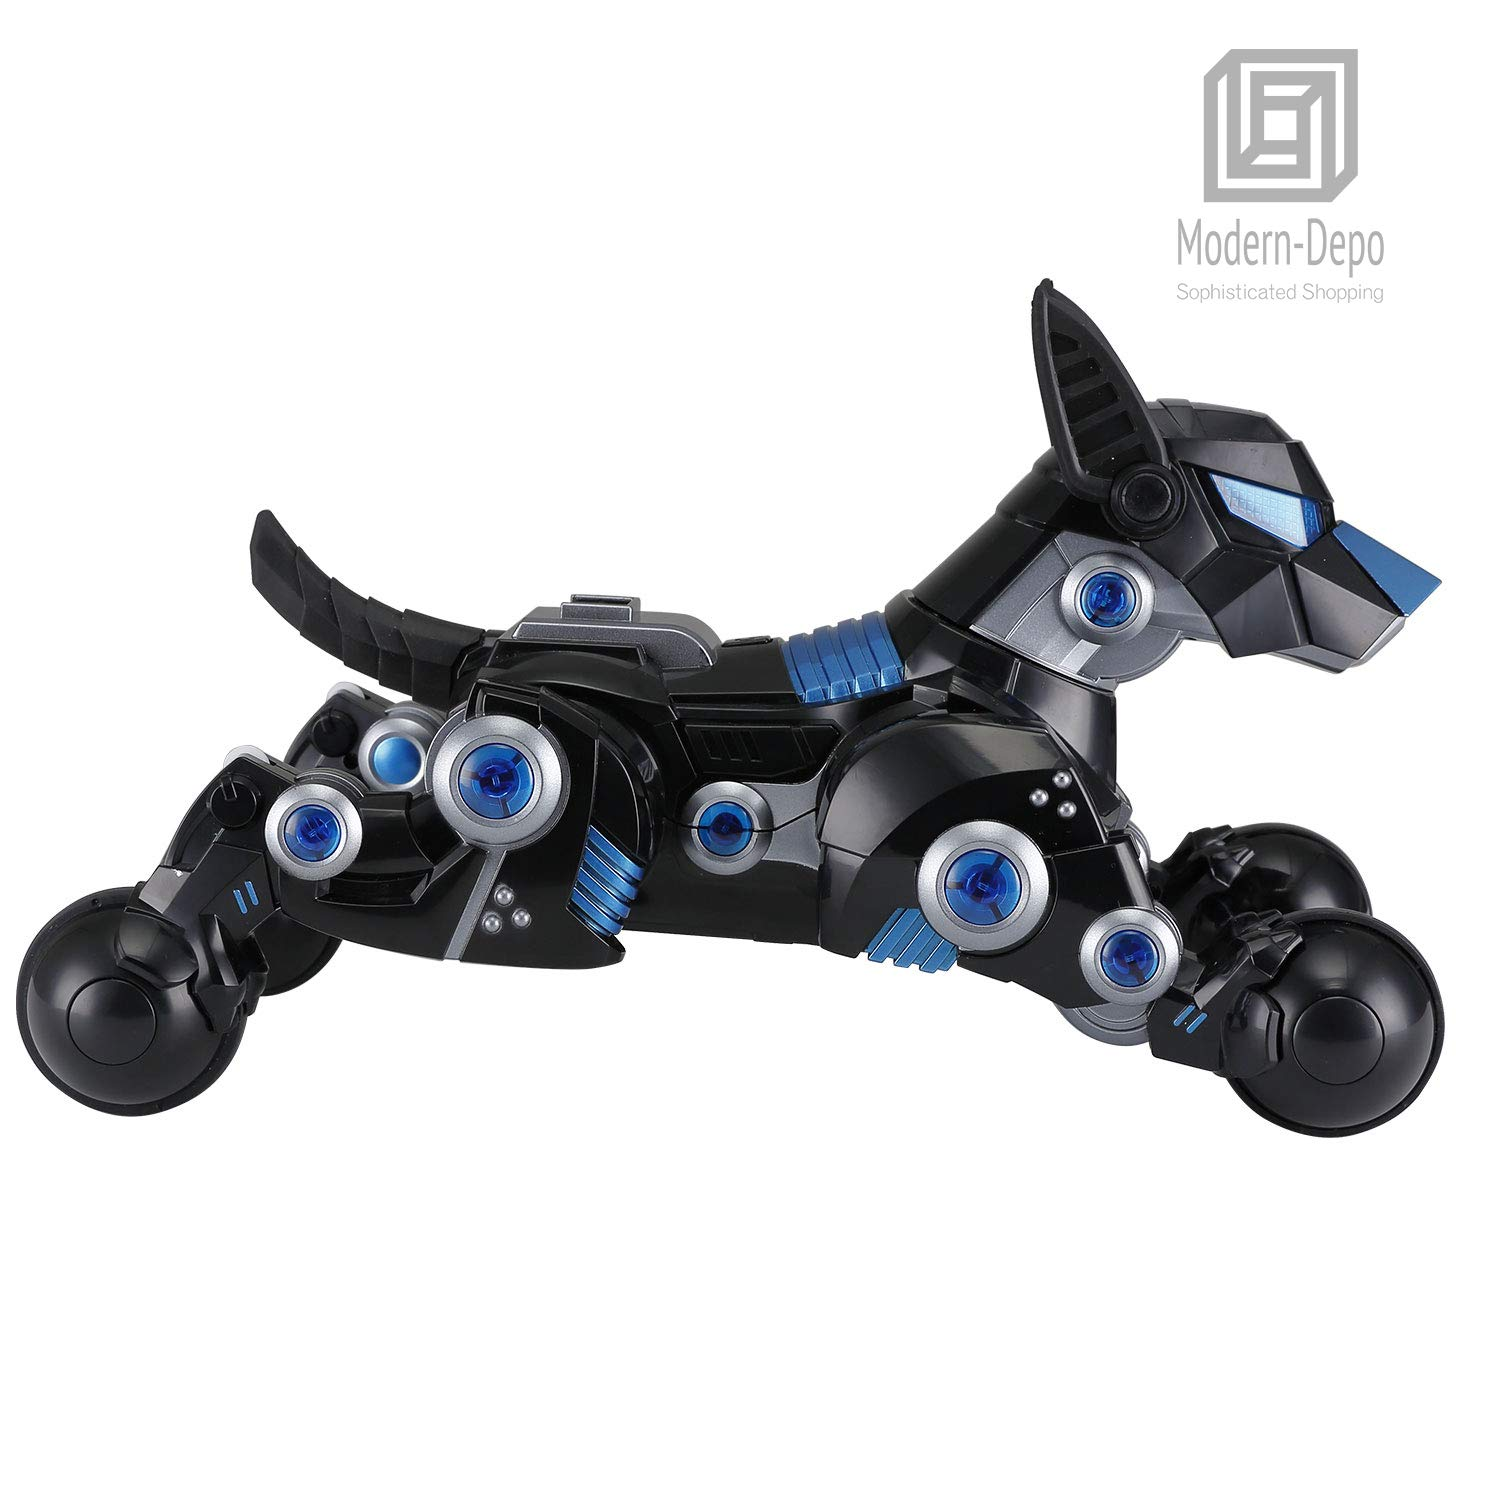 Modern-Depo Rastar Intelligent Robot Dog with Remote Control for Kids, USB Charging, Dancing Demo - Black by Modern-Depo (Image #4)